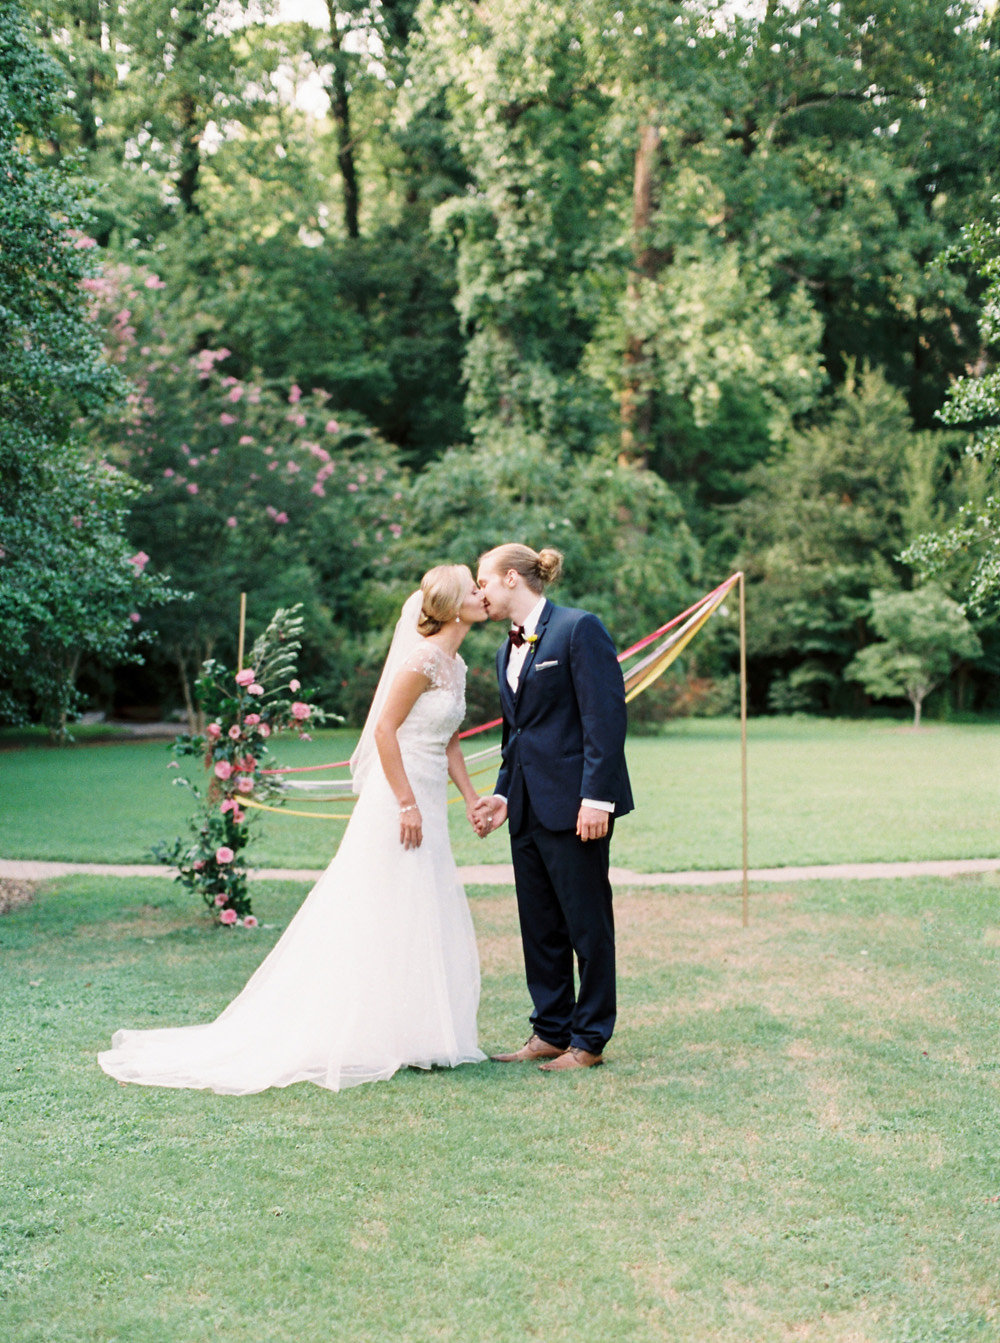 Cator Woolford Gardens Enchanted Wedding Inspiration Fine Art Photography.14